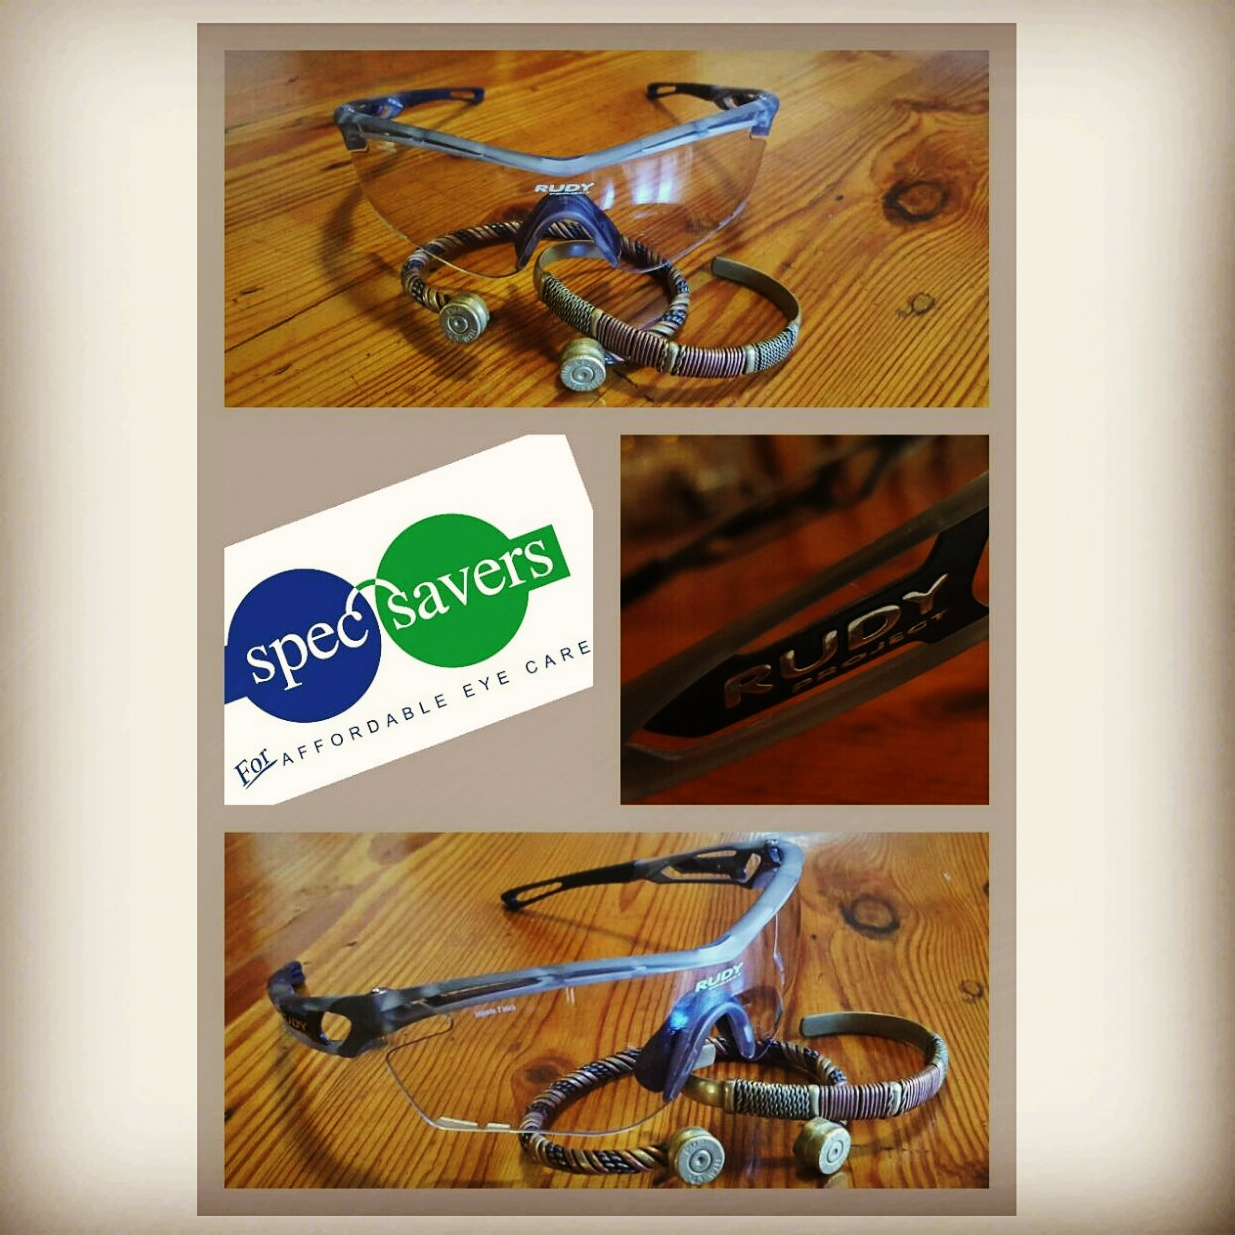 Rudy Projects - Great for outdoor and sport enthusiasts, Spec-Savers Key West is proud to stock this great brand